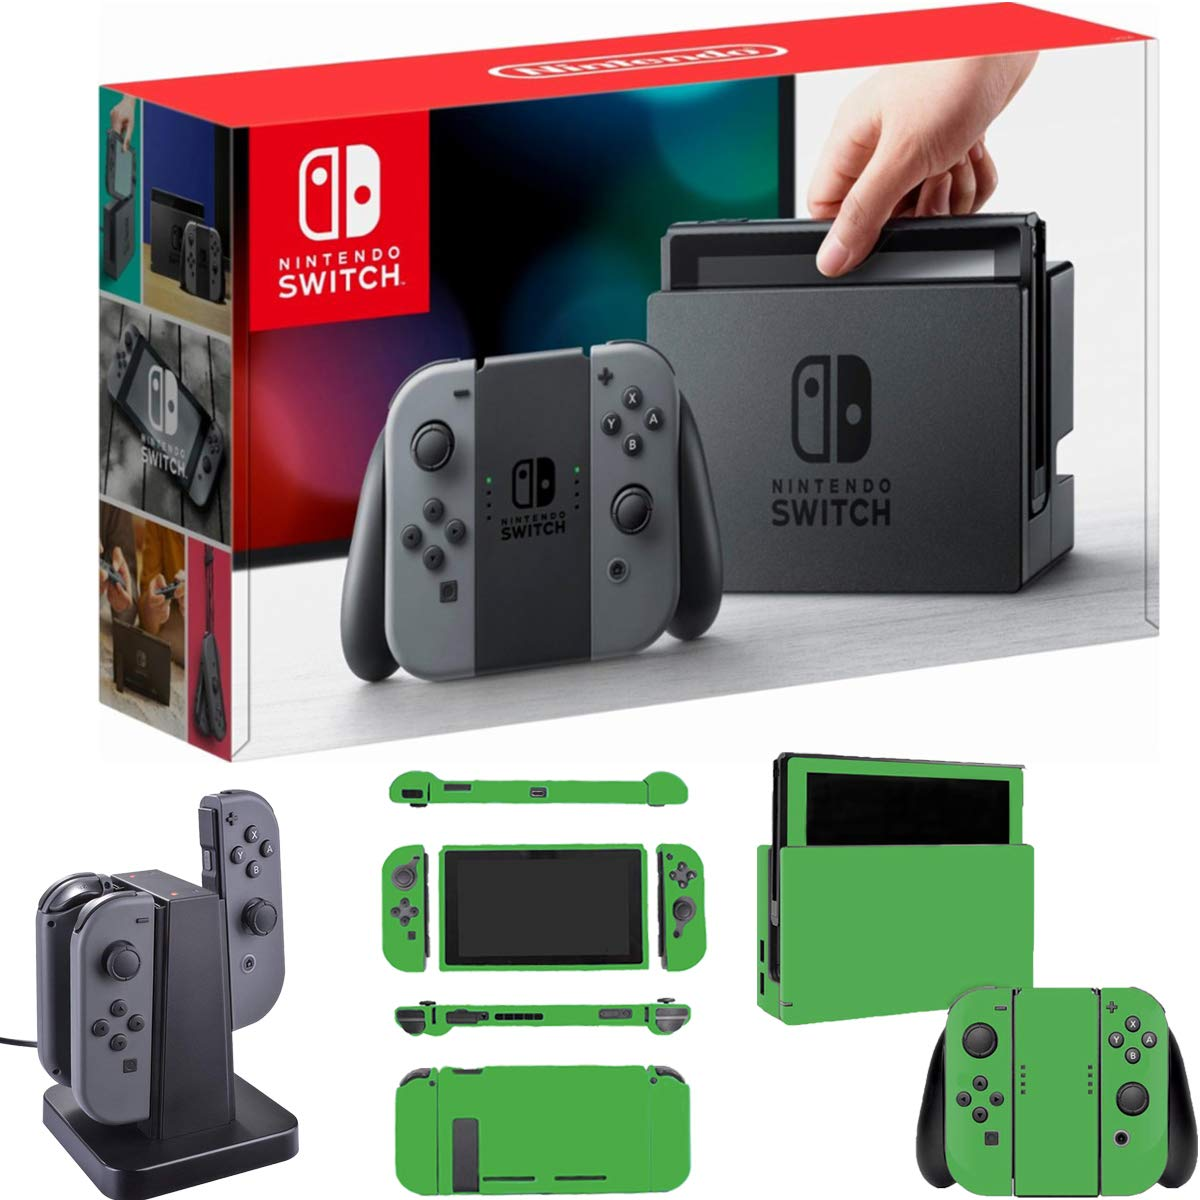 Nintendo Switch with Gray Joystick Controllers with Deco Gear Joystick Controller Charging Dock + Lime Skin Bundle